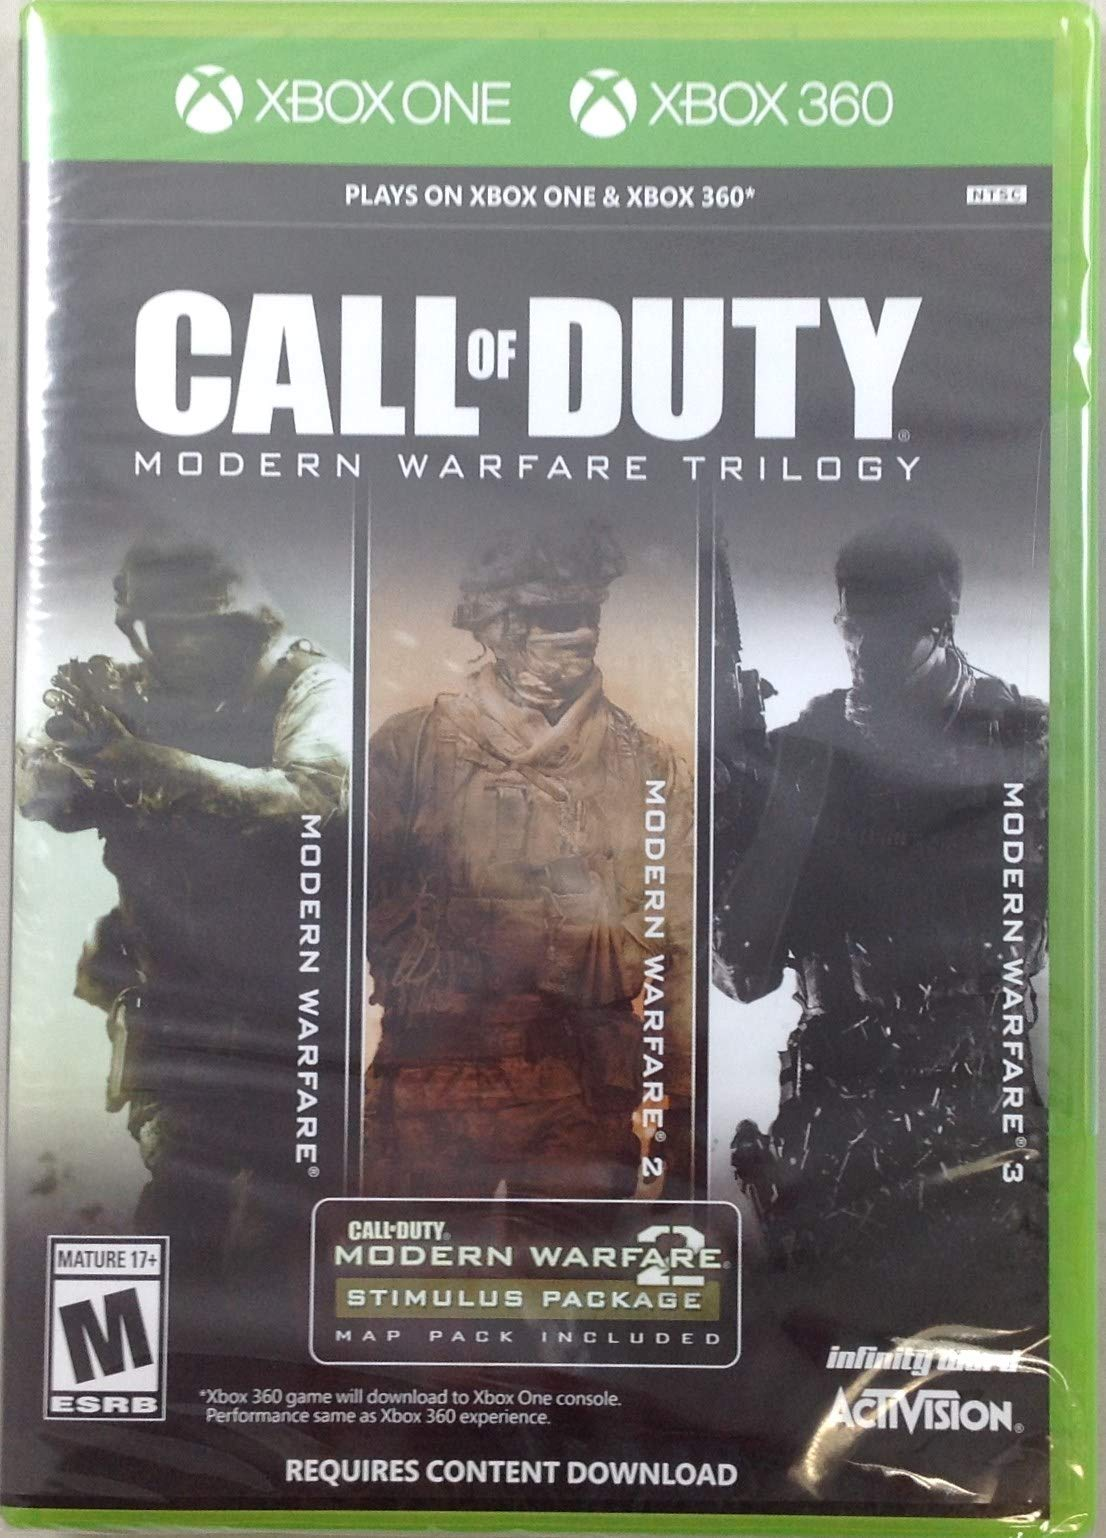 Buyr Com Games Call Of Duty Modern Warfare Trilogy 360 Xone